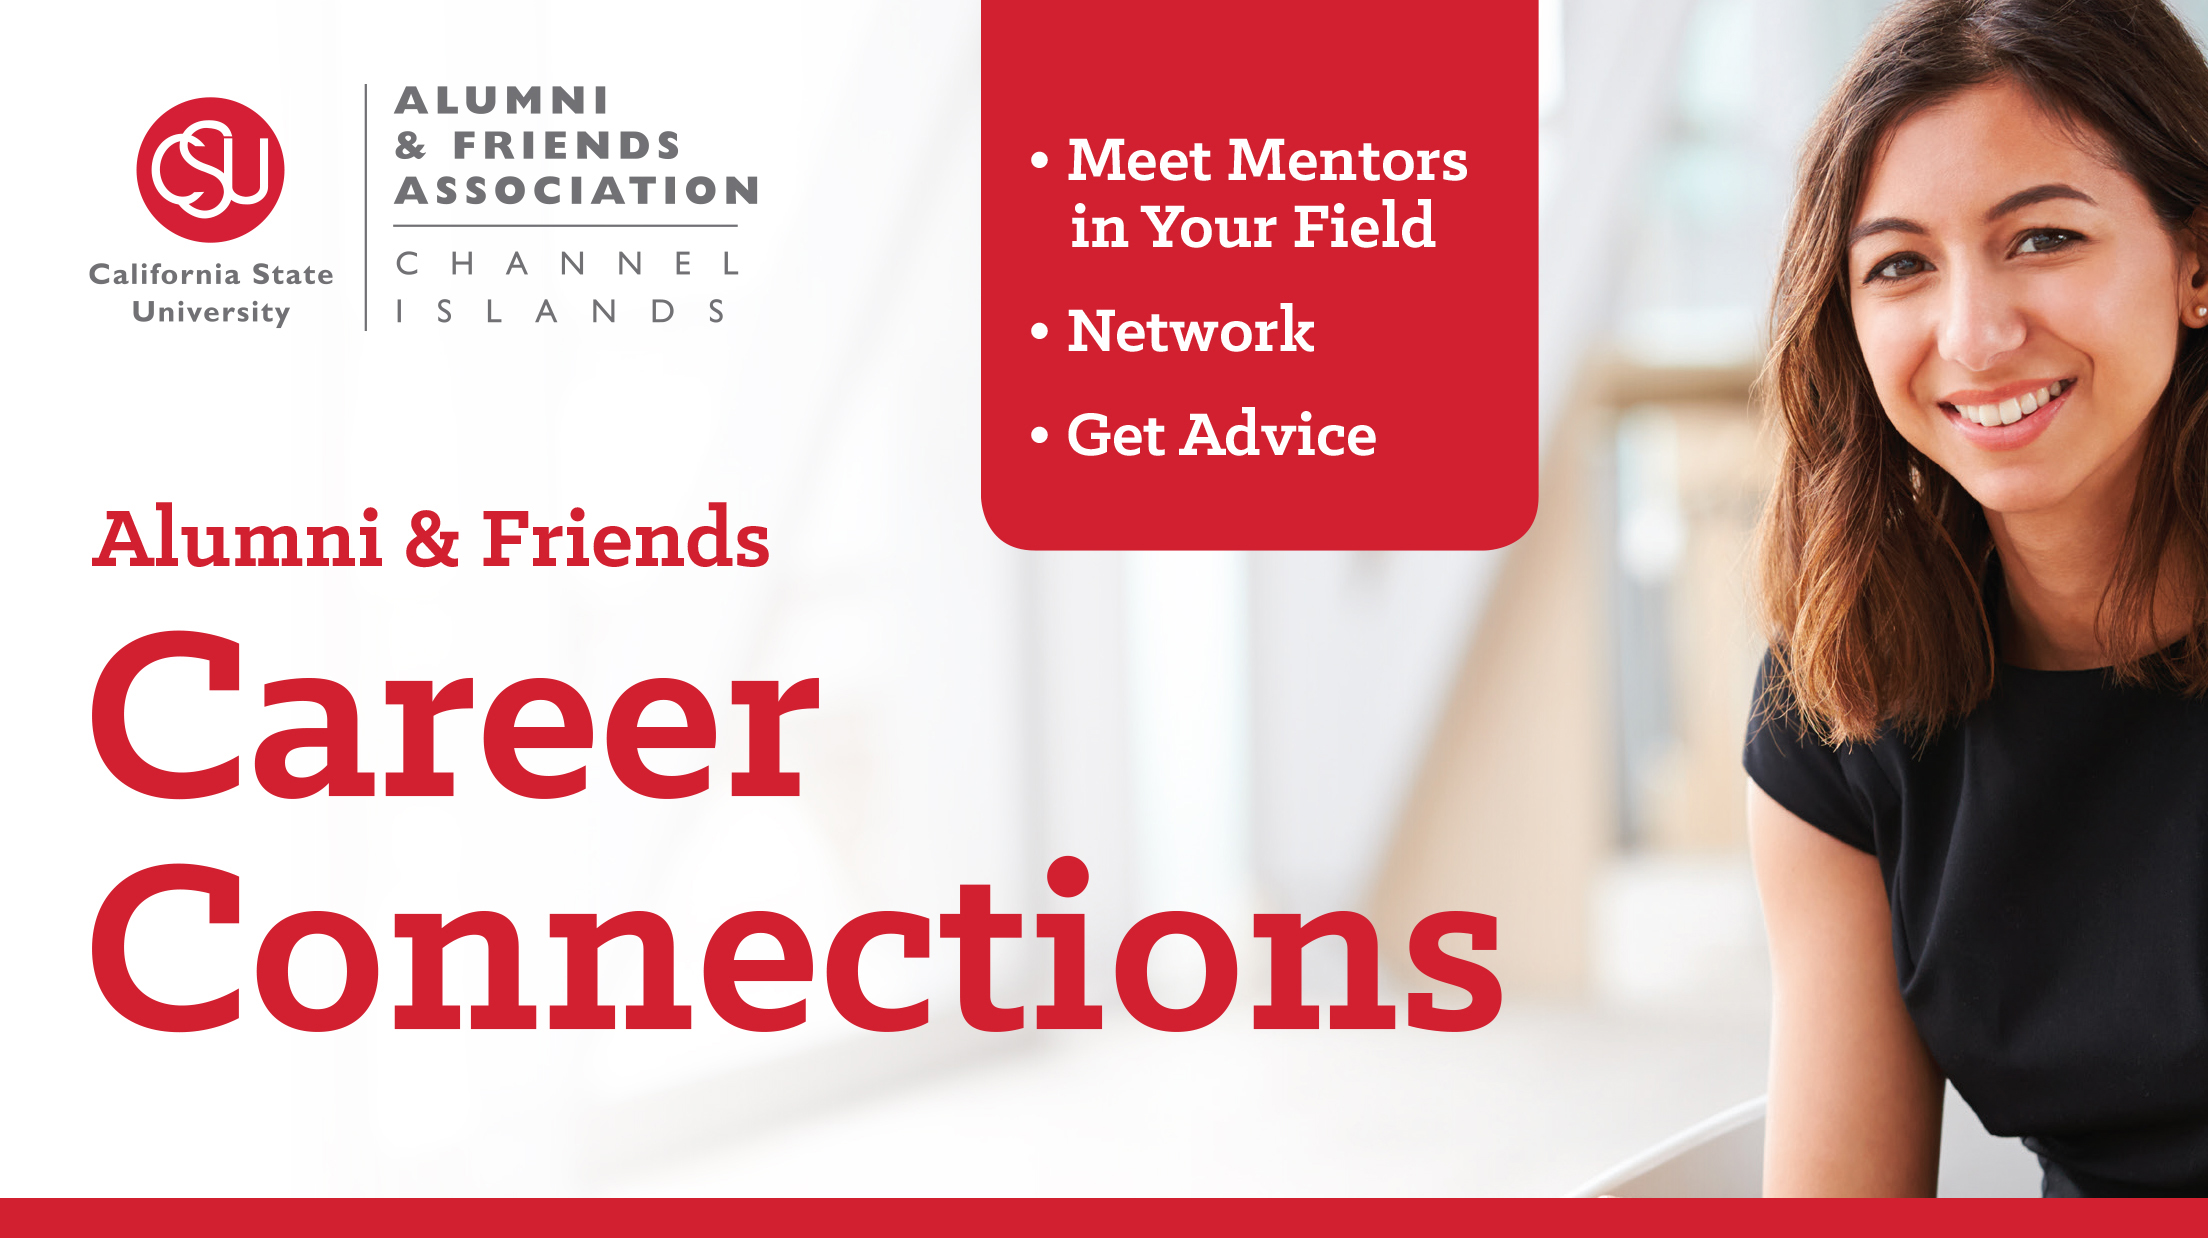 Join us at Career Connections